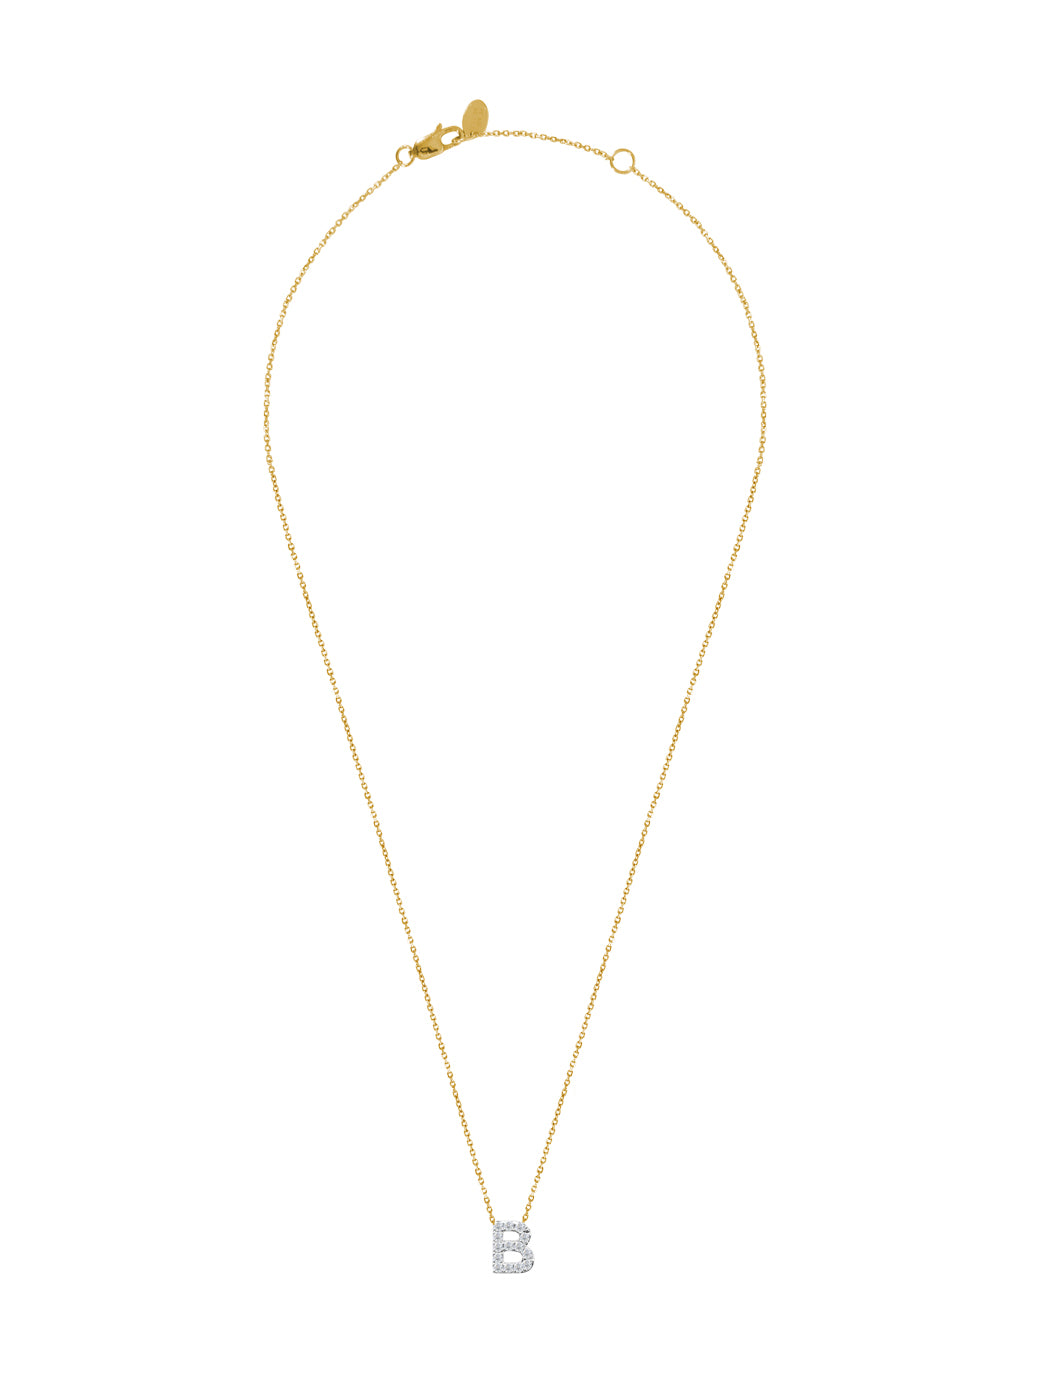 Fiorina Jewellery Diamond Alphabet Street Necklaces Gold Chain B